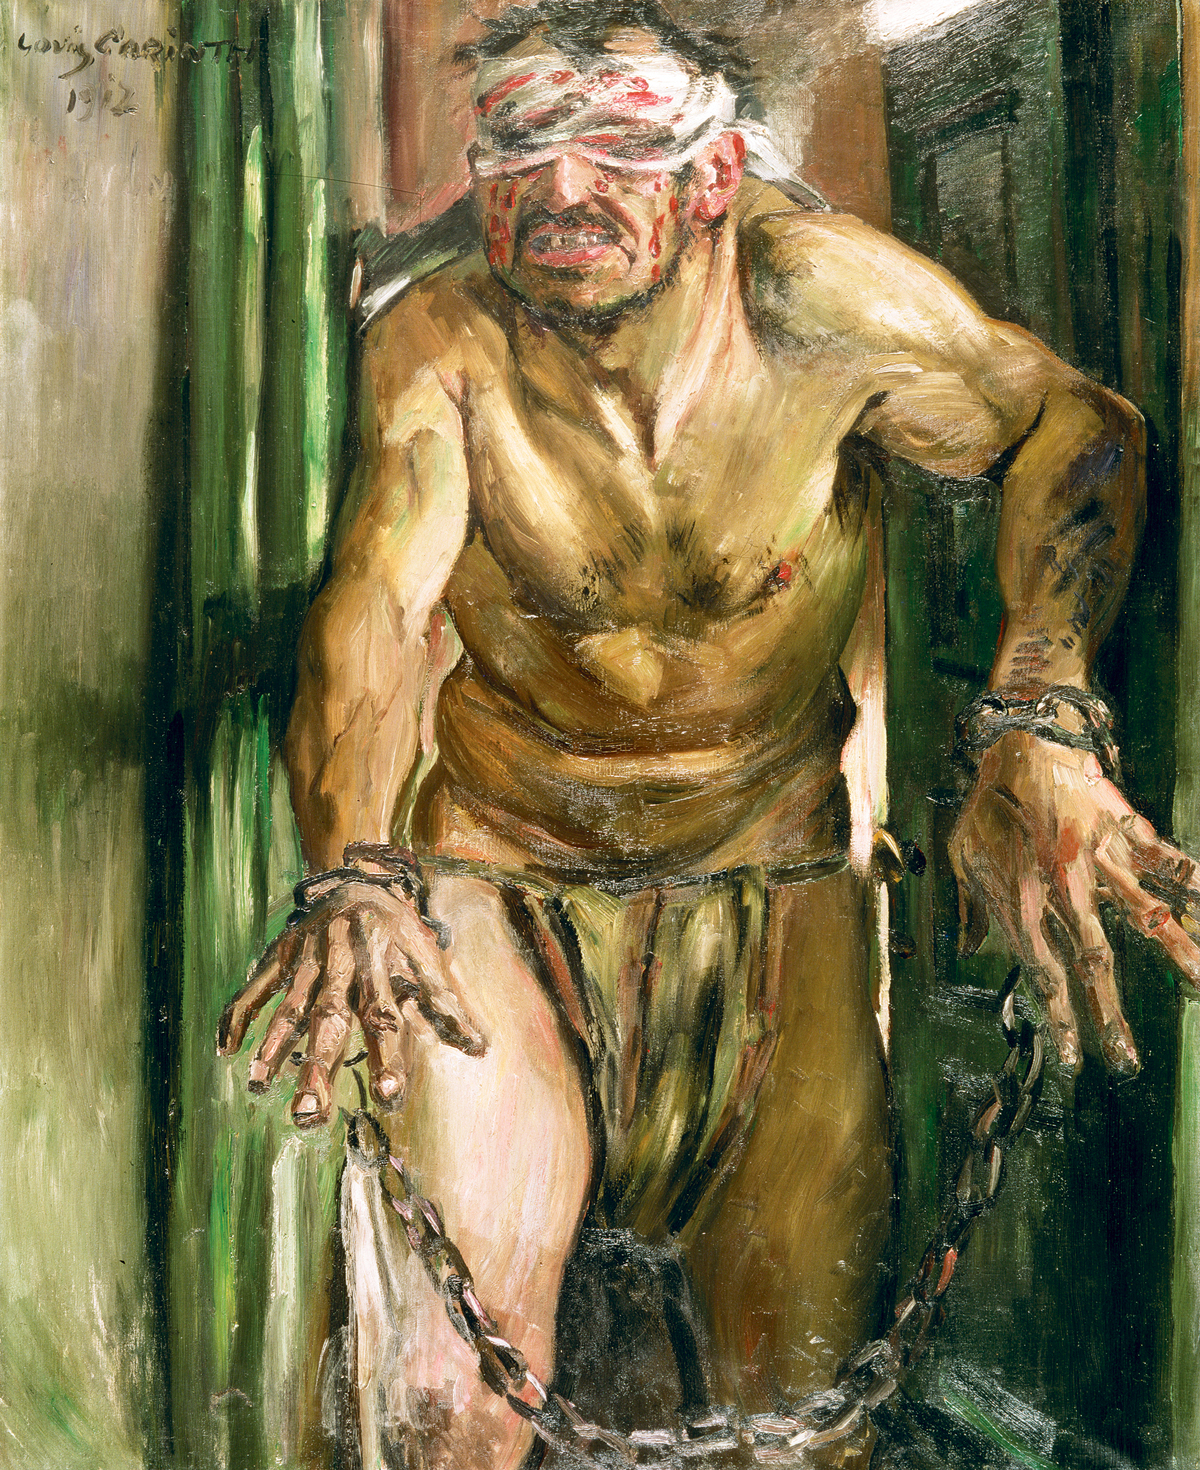 Samson Blinded, by Lovis Corinth, 1912. Alte Nationalgalerie, Berlin, Germany.